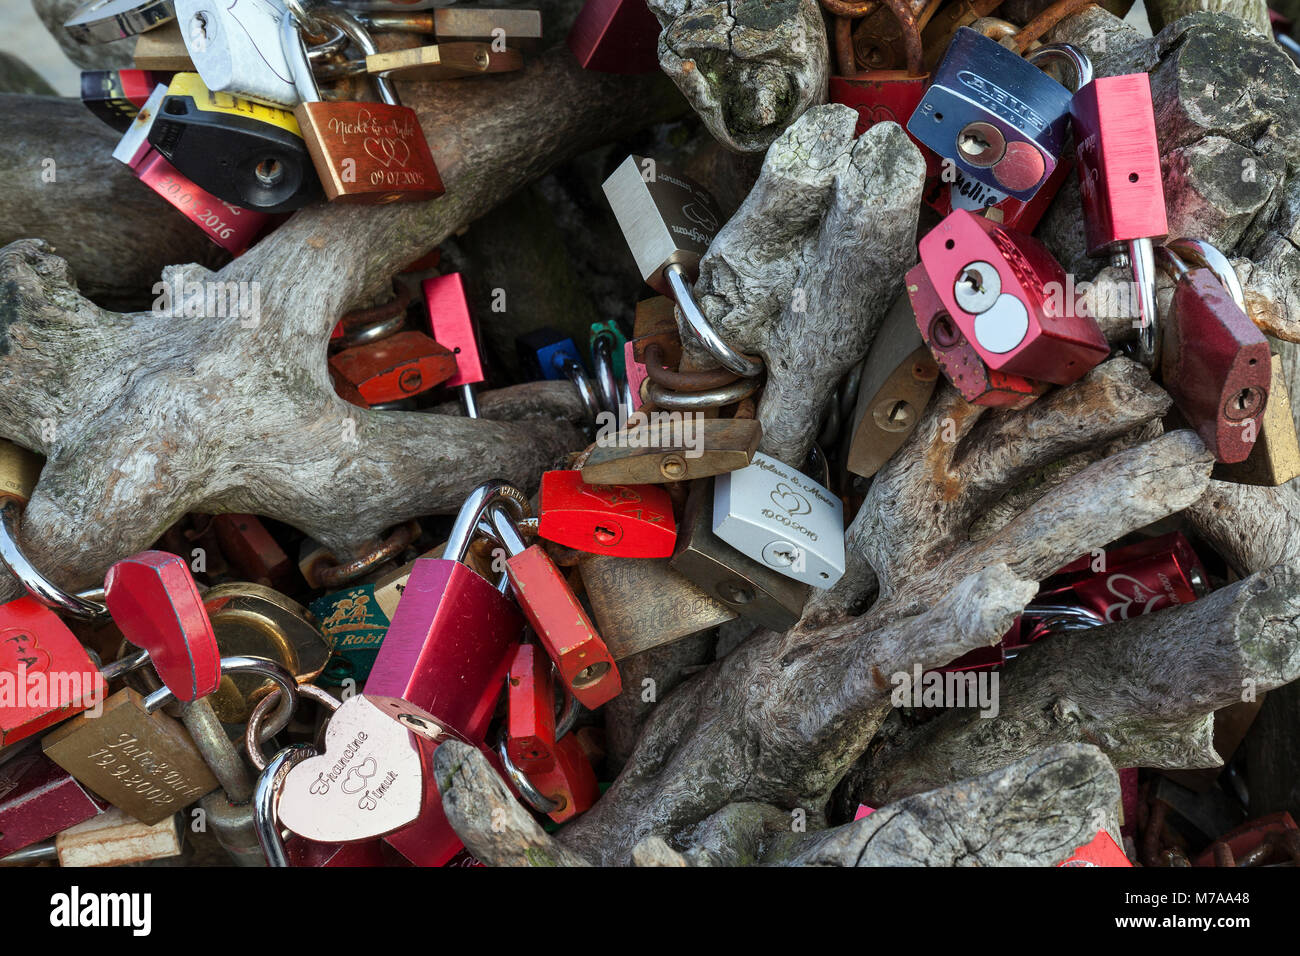 Love padlocks on a tree root, Zingst, Fischland-Darß-Zingst, Mecklenburg-Western Pomerania, Germany - Stock Image